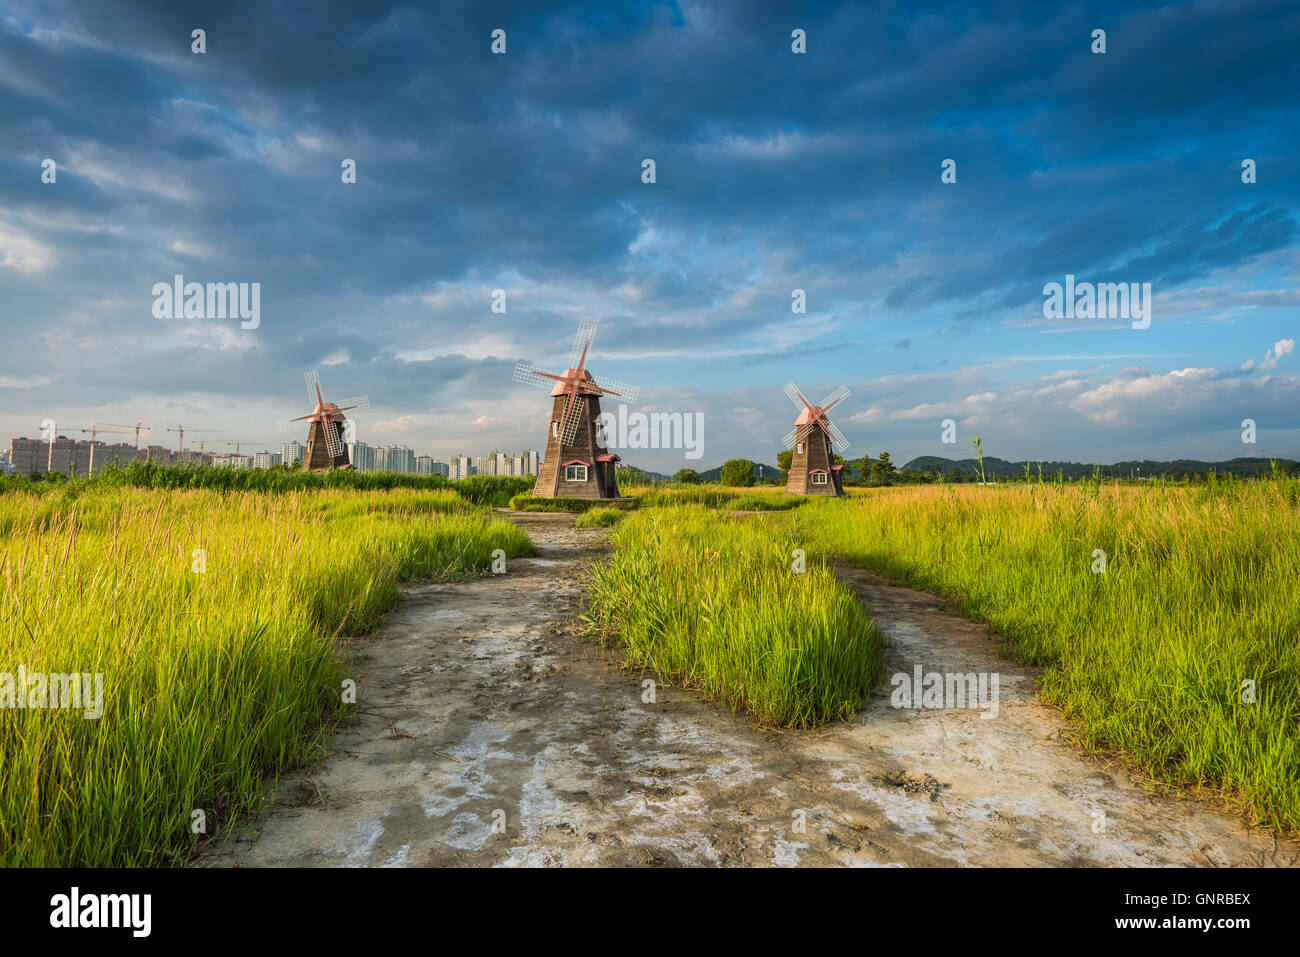 Old wooden mills the field in the park,south korea - Stock Image